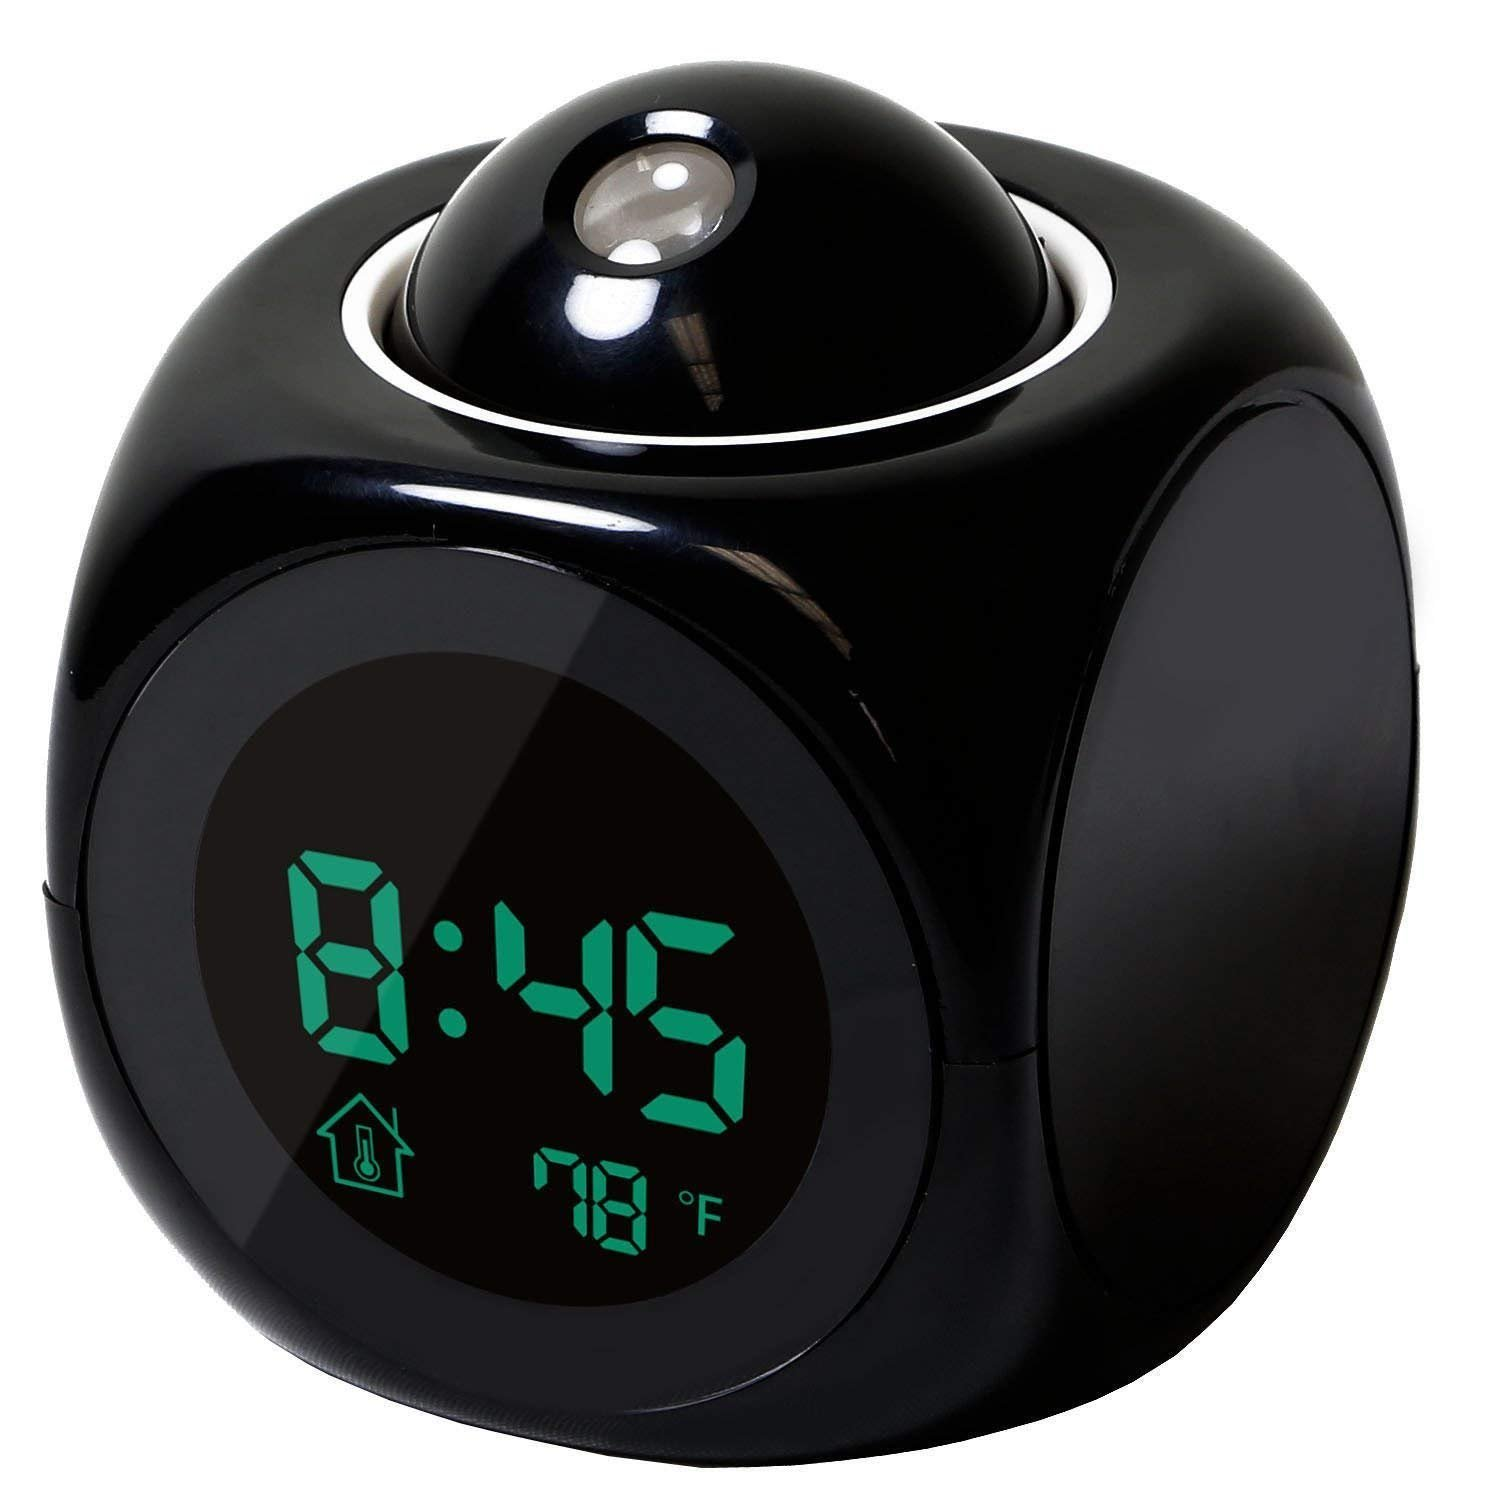 Projection Alarm Clock with Soft LED nightlight ,Snooze,Battery Backup, Auto Time Set,Sleep Timer,Indoor Time/Temperature/Day/Date Display Digital Bedside clock (Black) Jiayinda